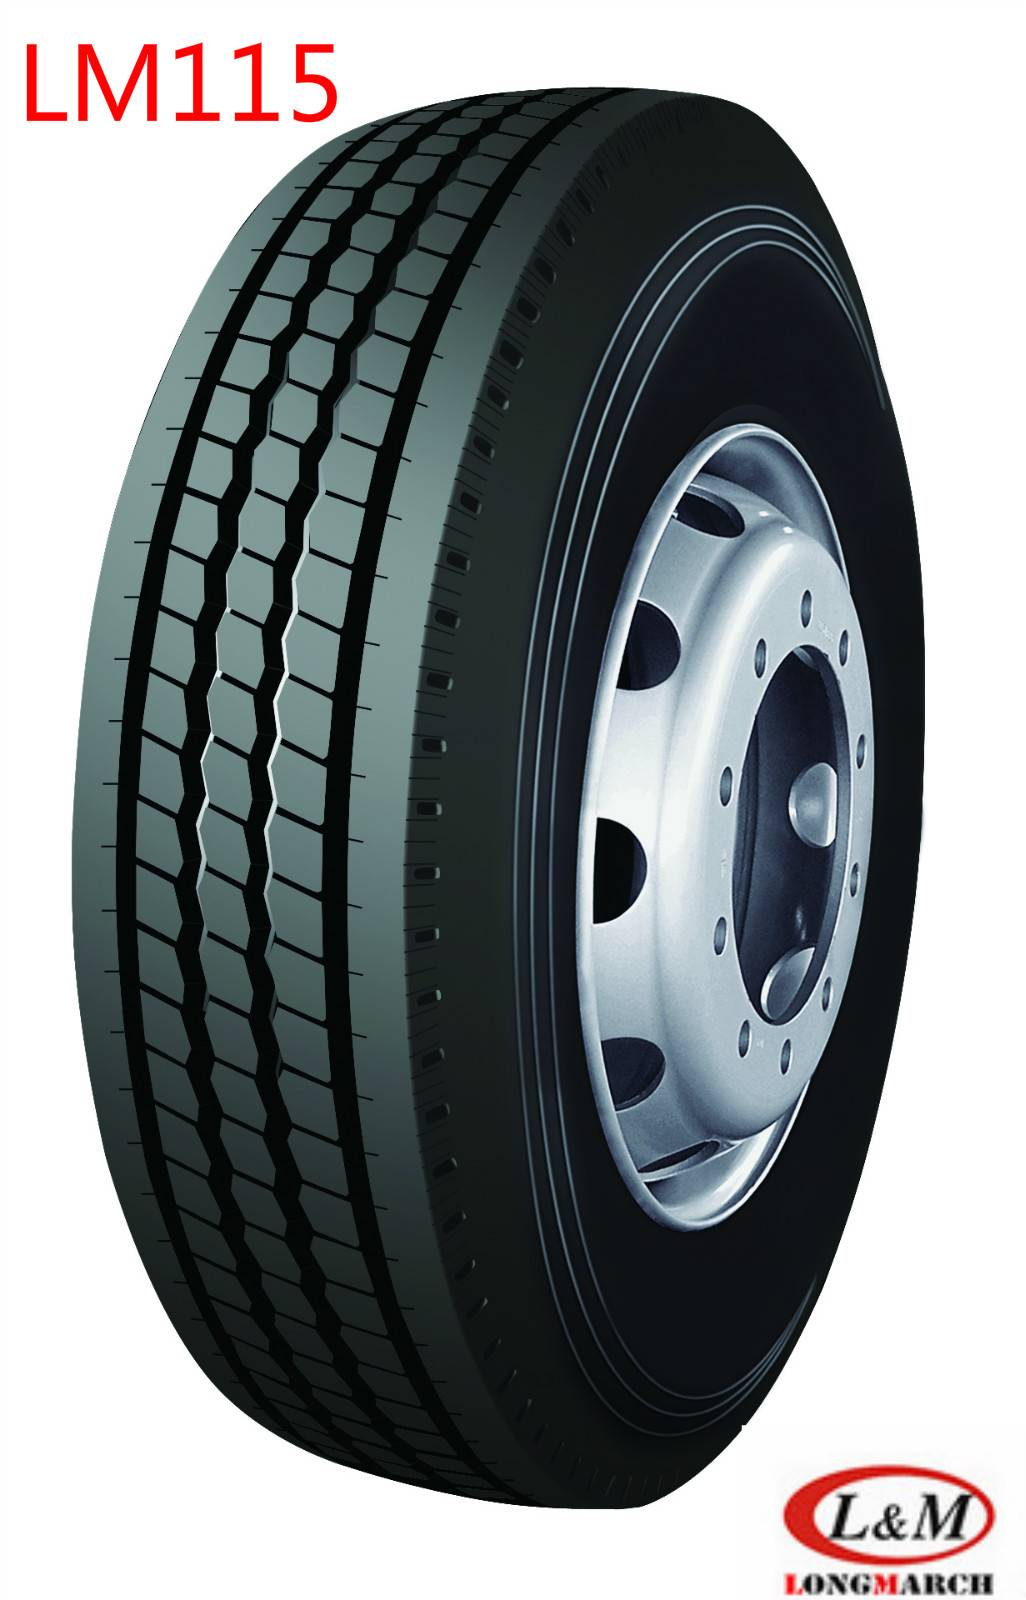 Long March Roadlux All Position Trailer Drive Steer Radial Truck Tire (LM115)